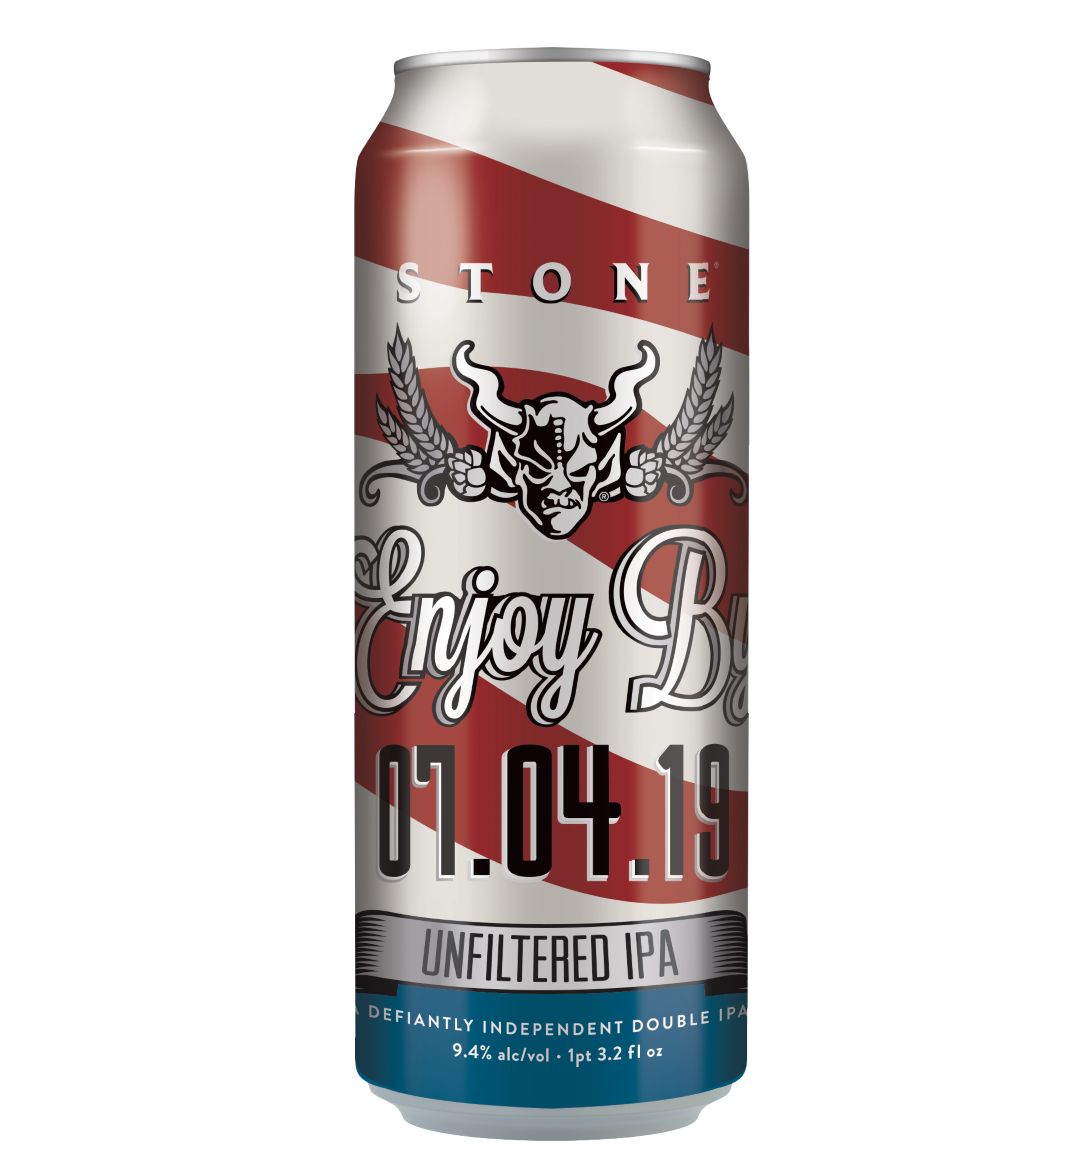 Stone Enjoy By 07.04.19 Unfiltered IPA